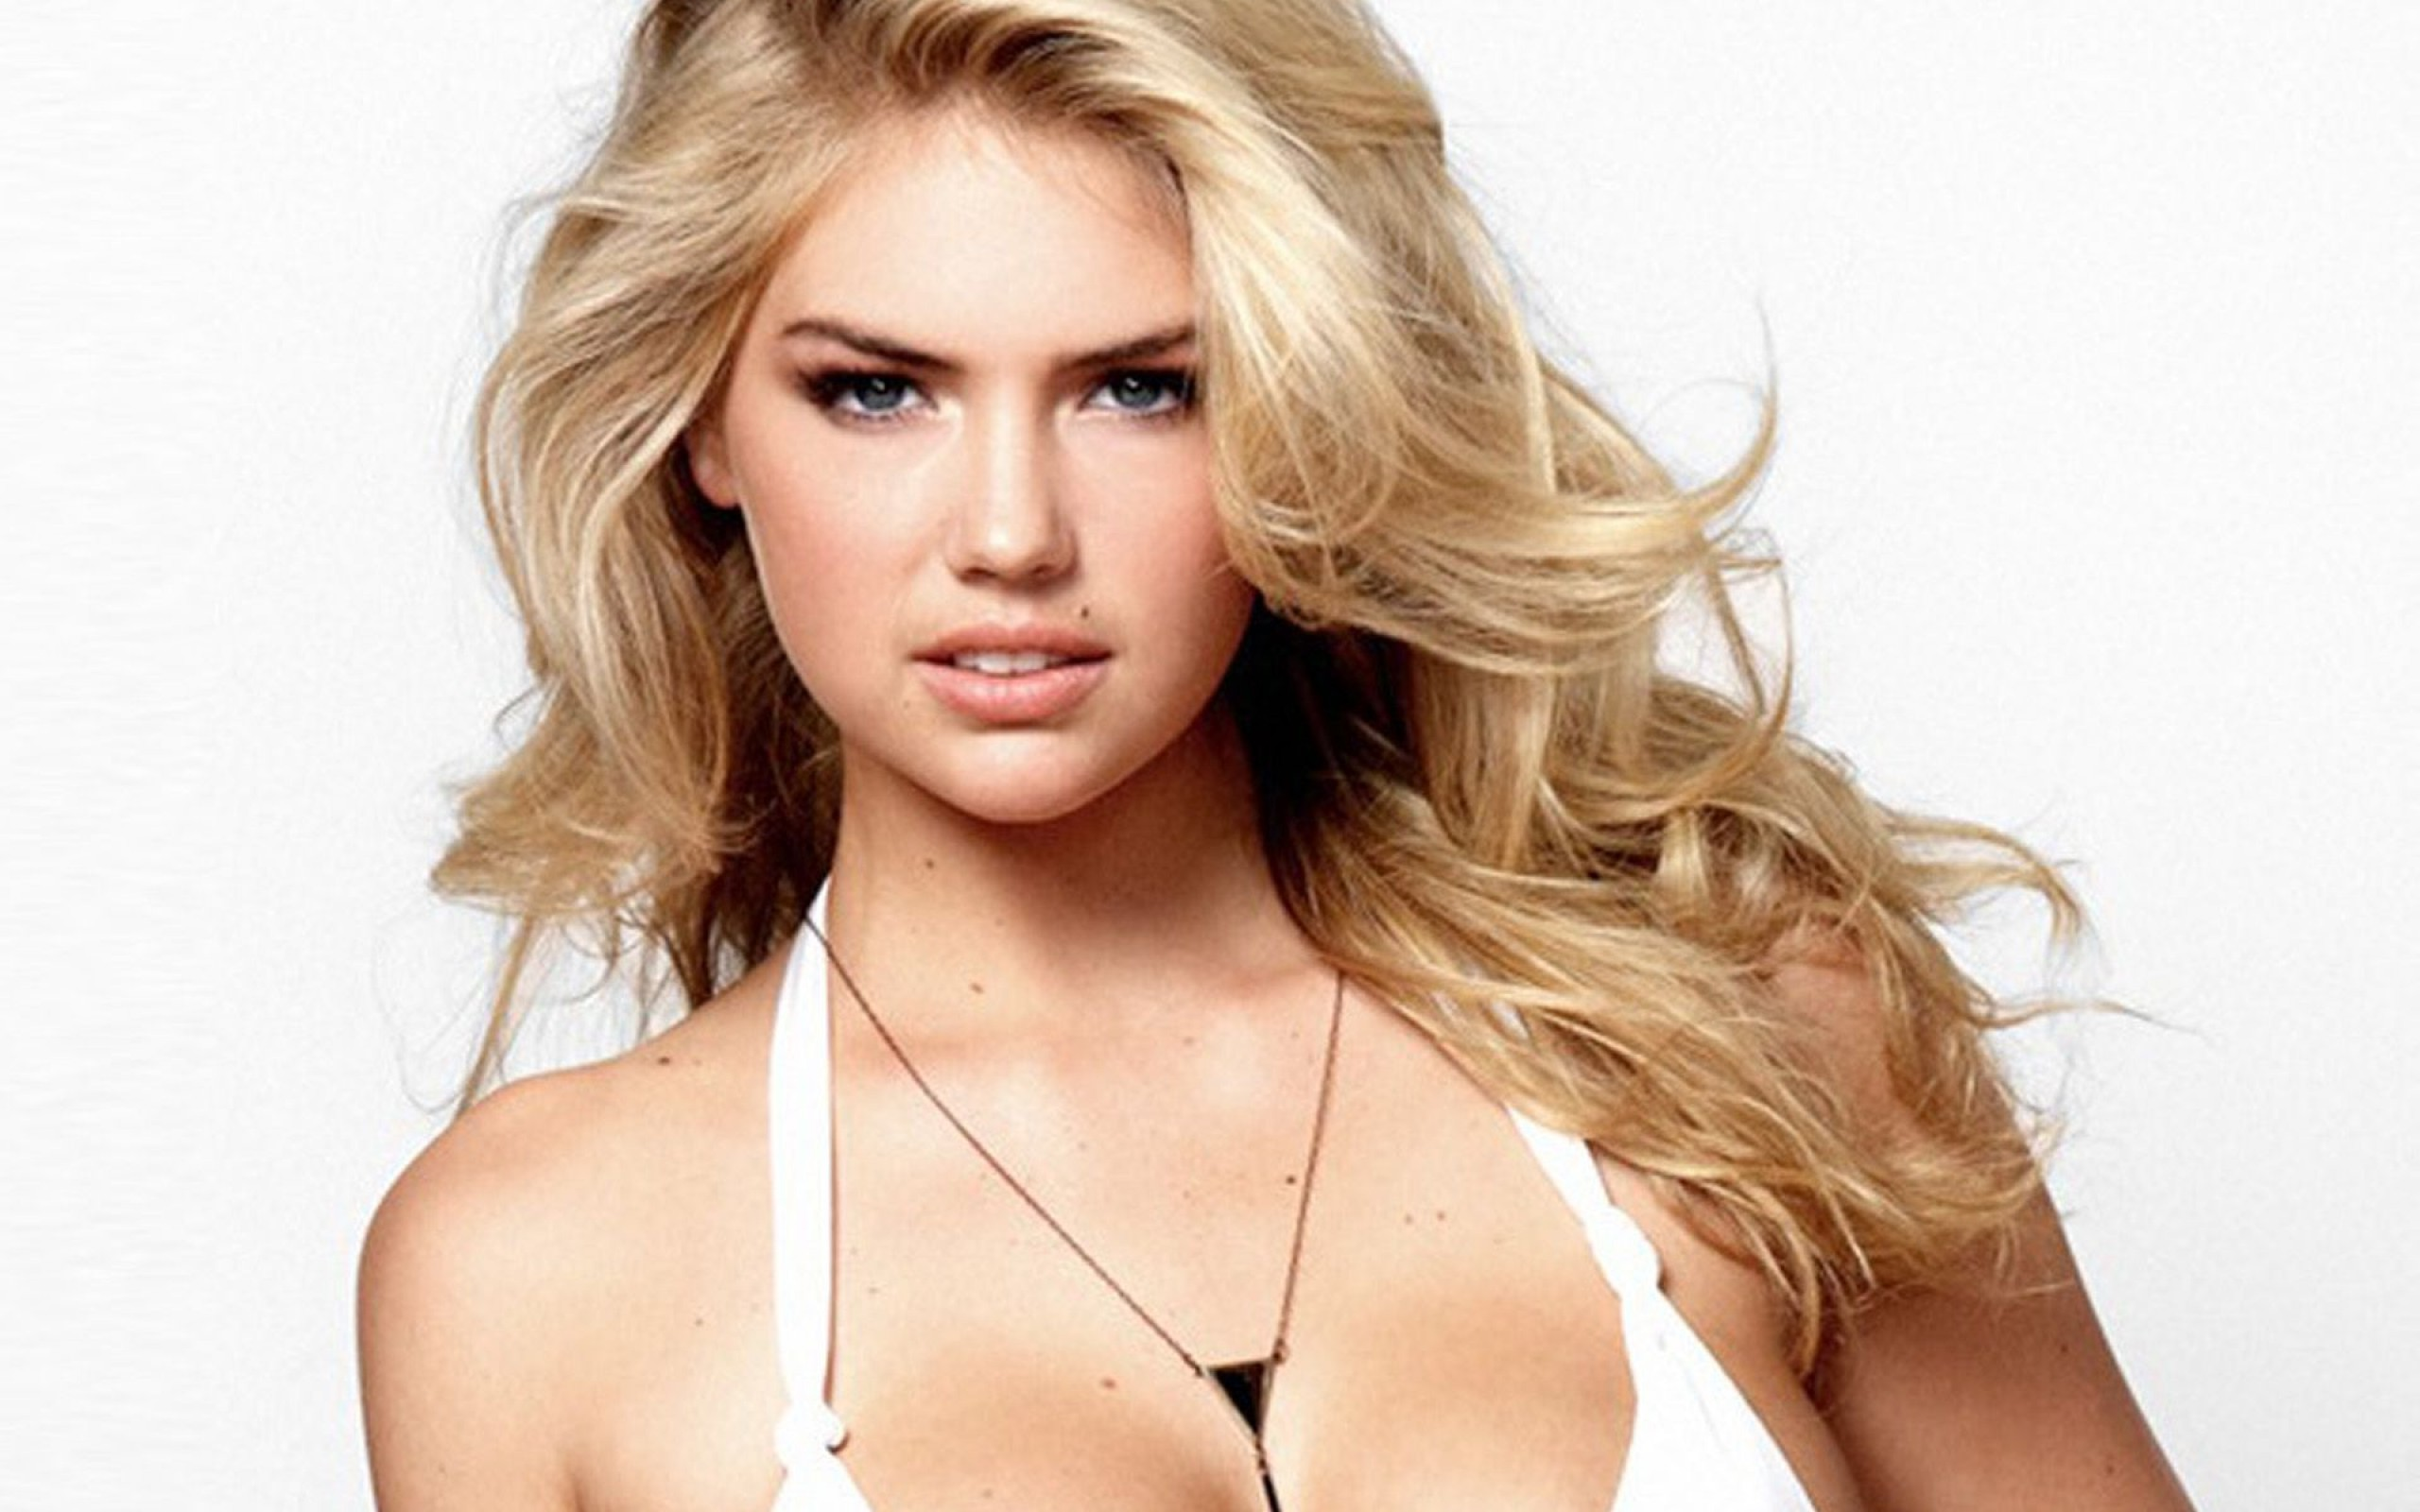 Kate upton wallpapers high resolution and quality download kate upton background voltagebd Gallery